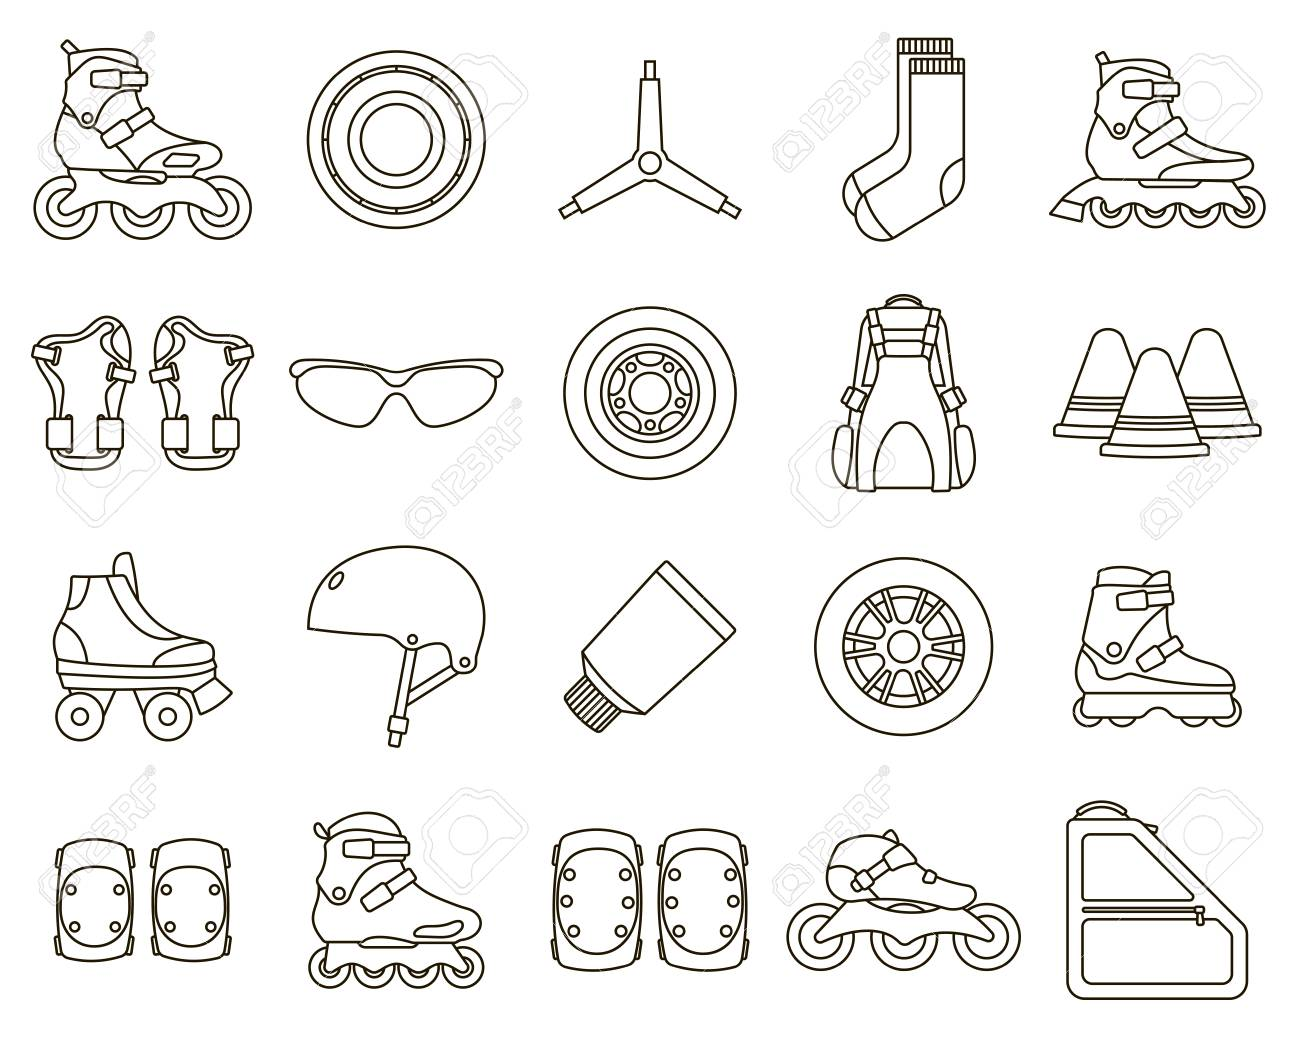 Set of Inline Roller Skates and accessories icons isolated on white background. Outline vector illustration. - 127490758